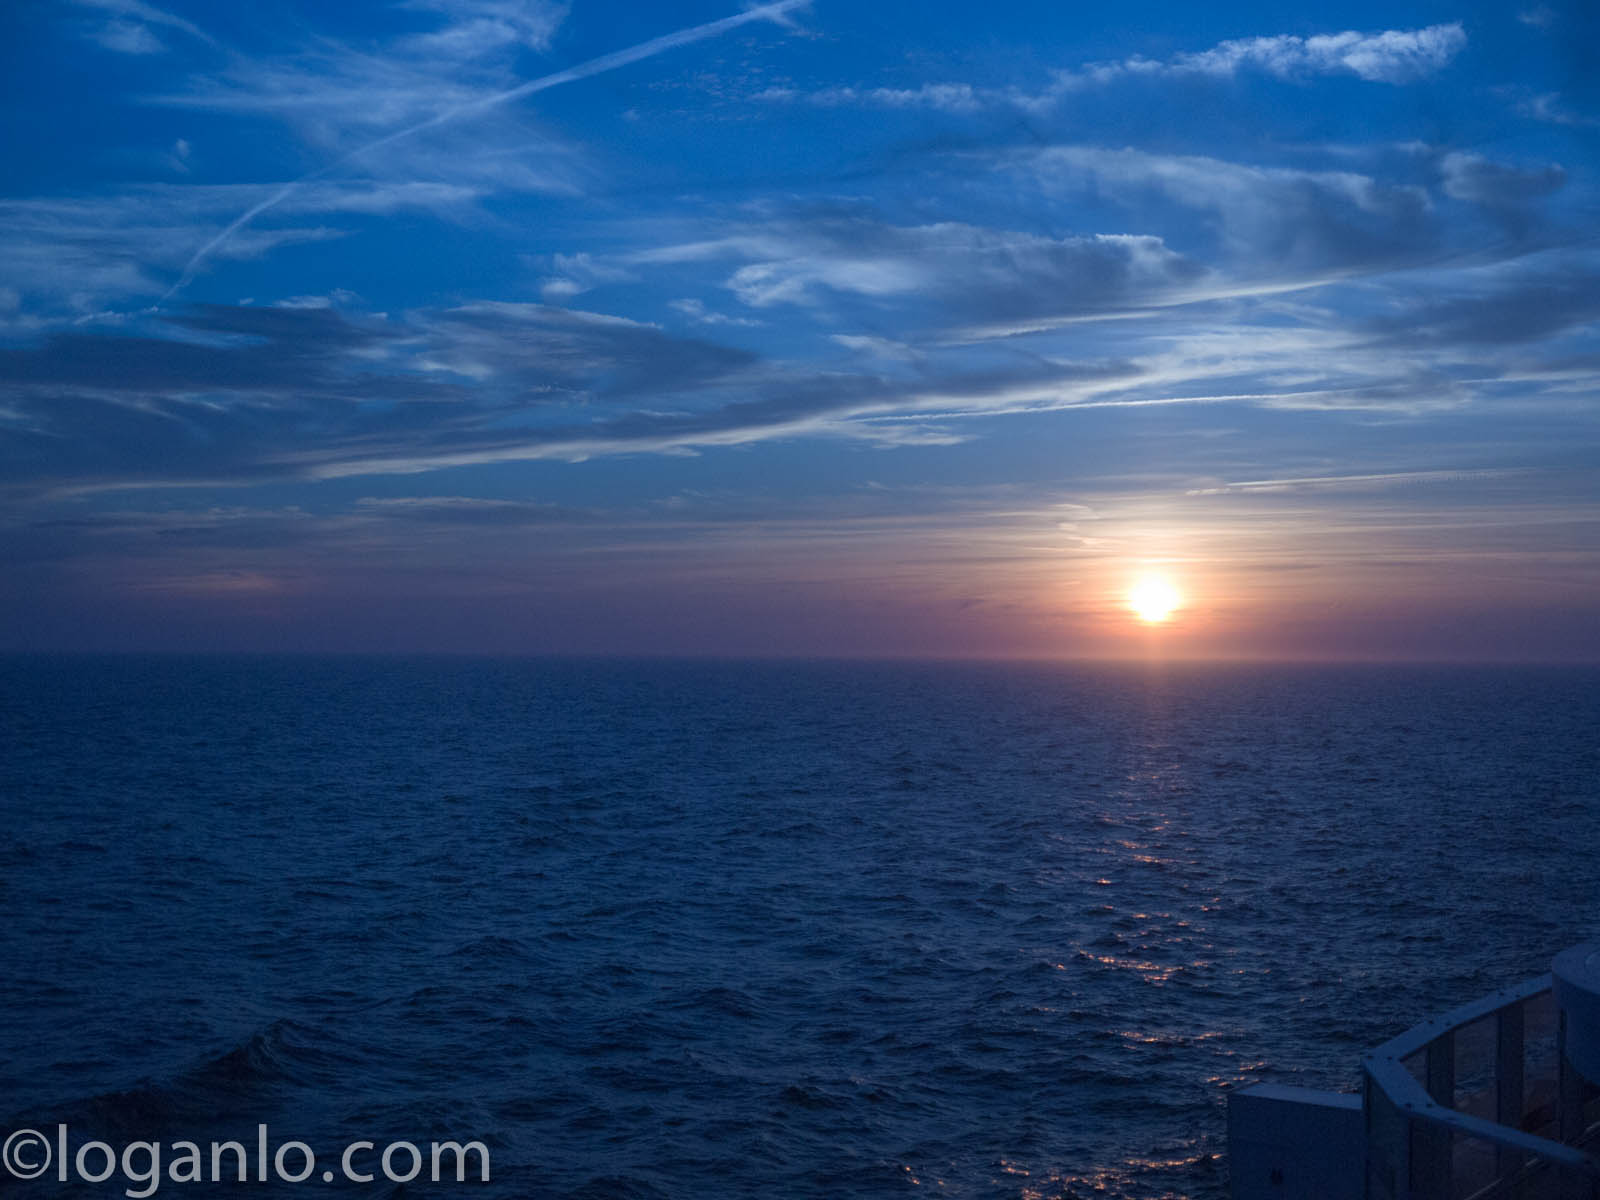 Sun setting over Atlantic Ocean